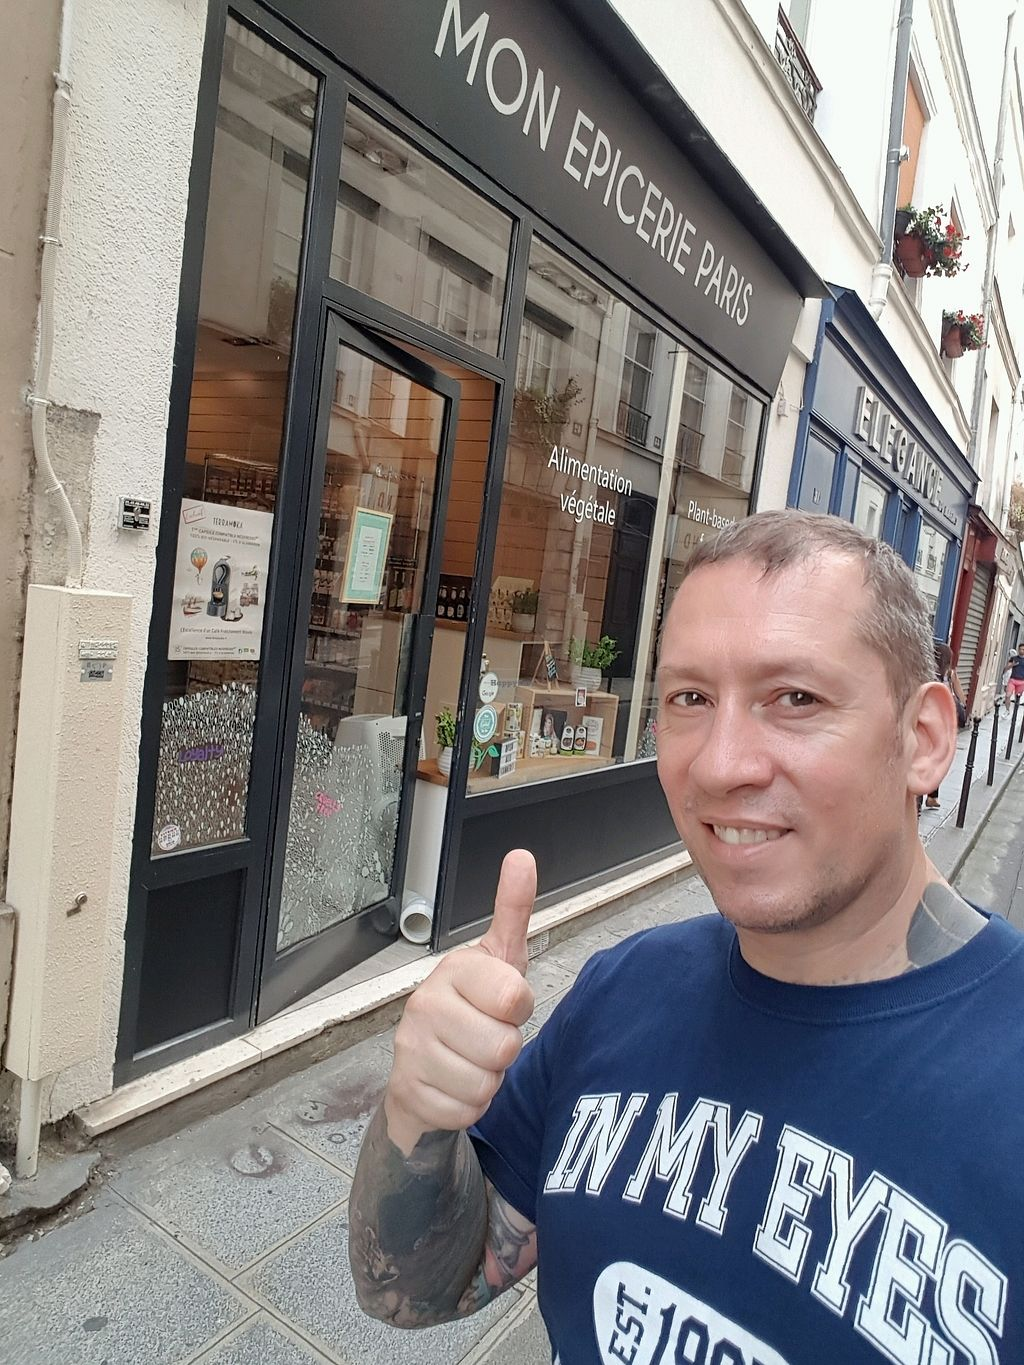 "Photo of Mon Epicerie Paris  by <a href=""/members/profile/AngryxPhil"">AngryxPhil</a> <br/>perfecto <br/> August 26, 2017  - <a href='/contact/abuse/image/91846/297391'>Report</a>"